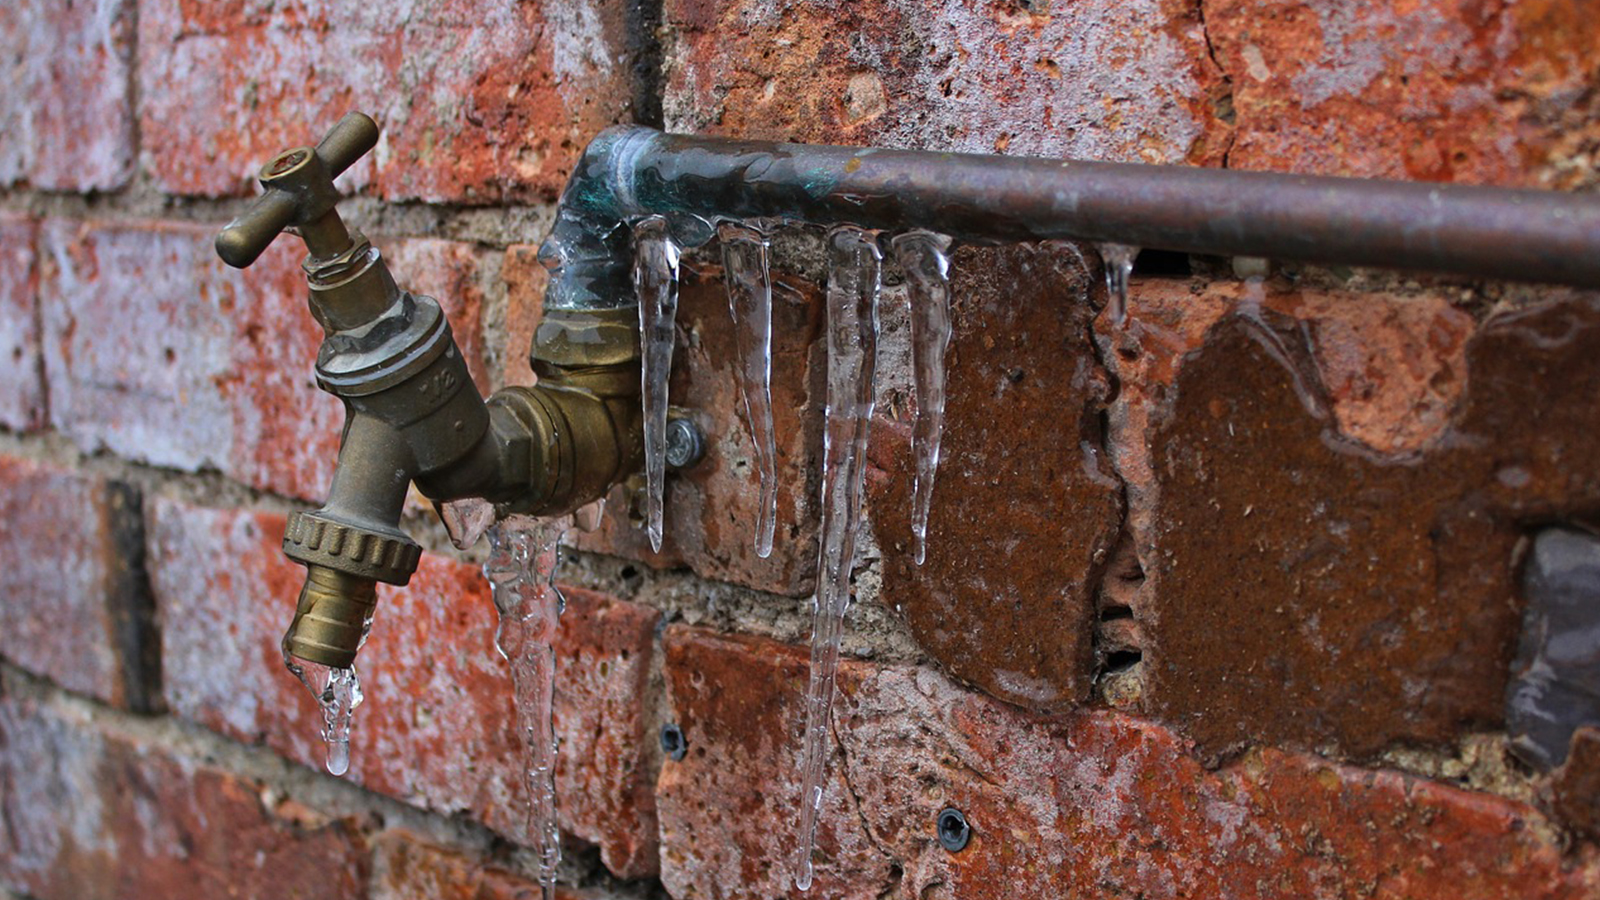 Frozen pipes during winter